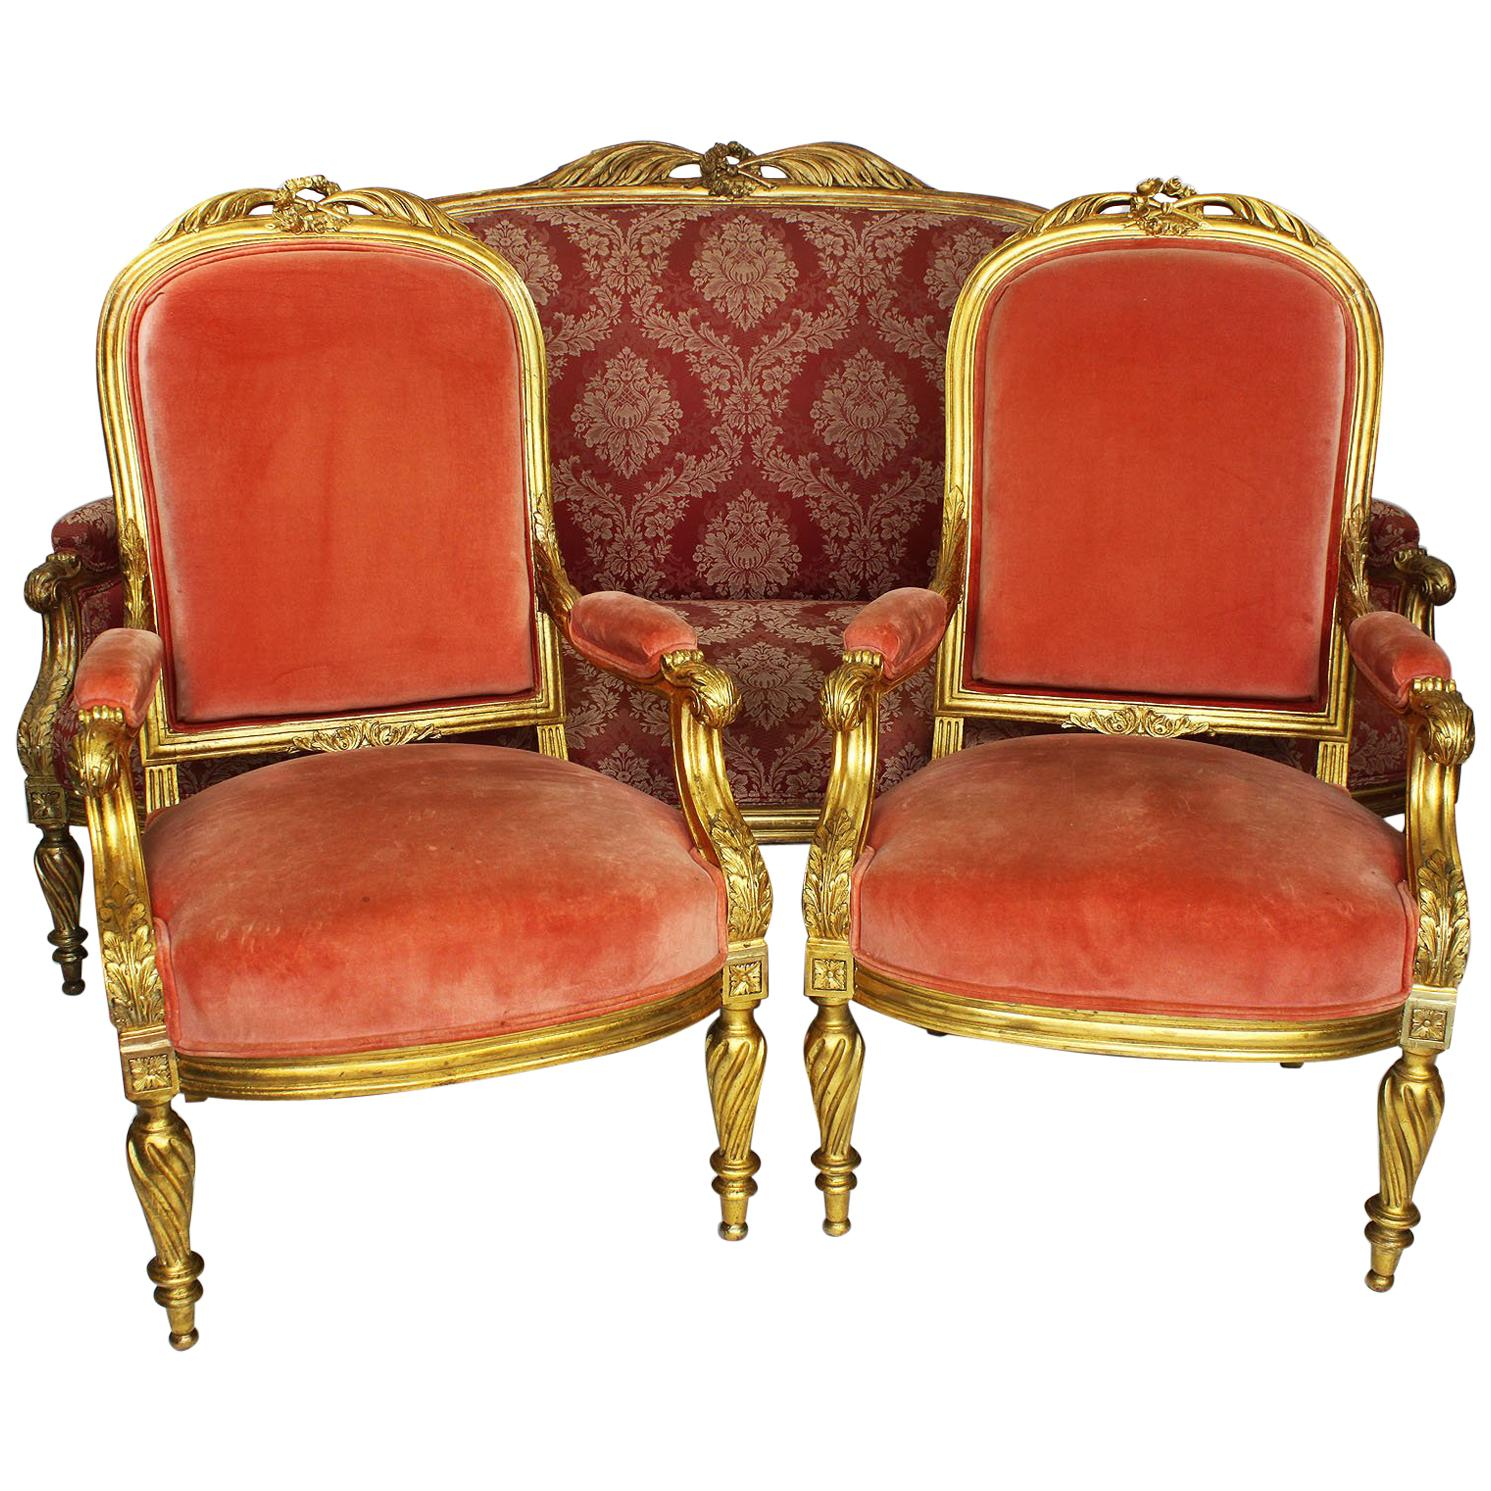 French Louis XVI Style 19th Century Giltwood Carved Three-Piece Salon Suite